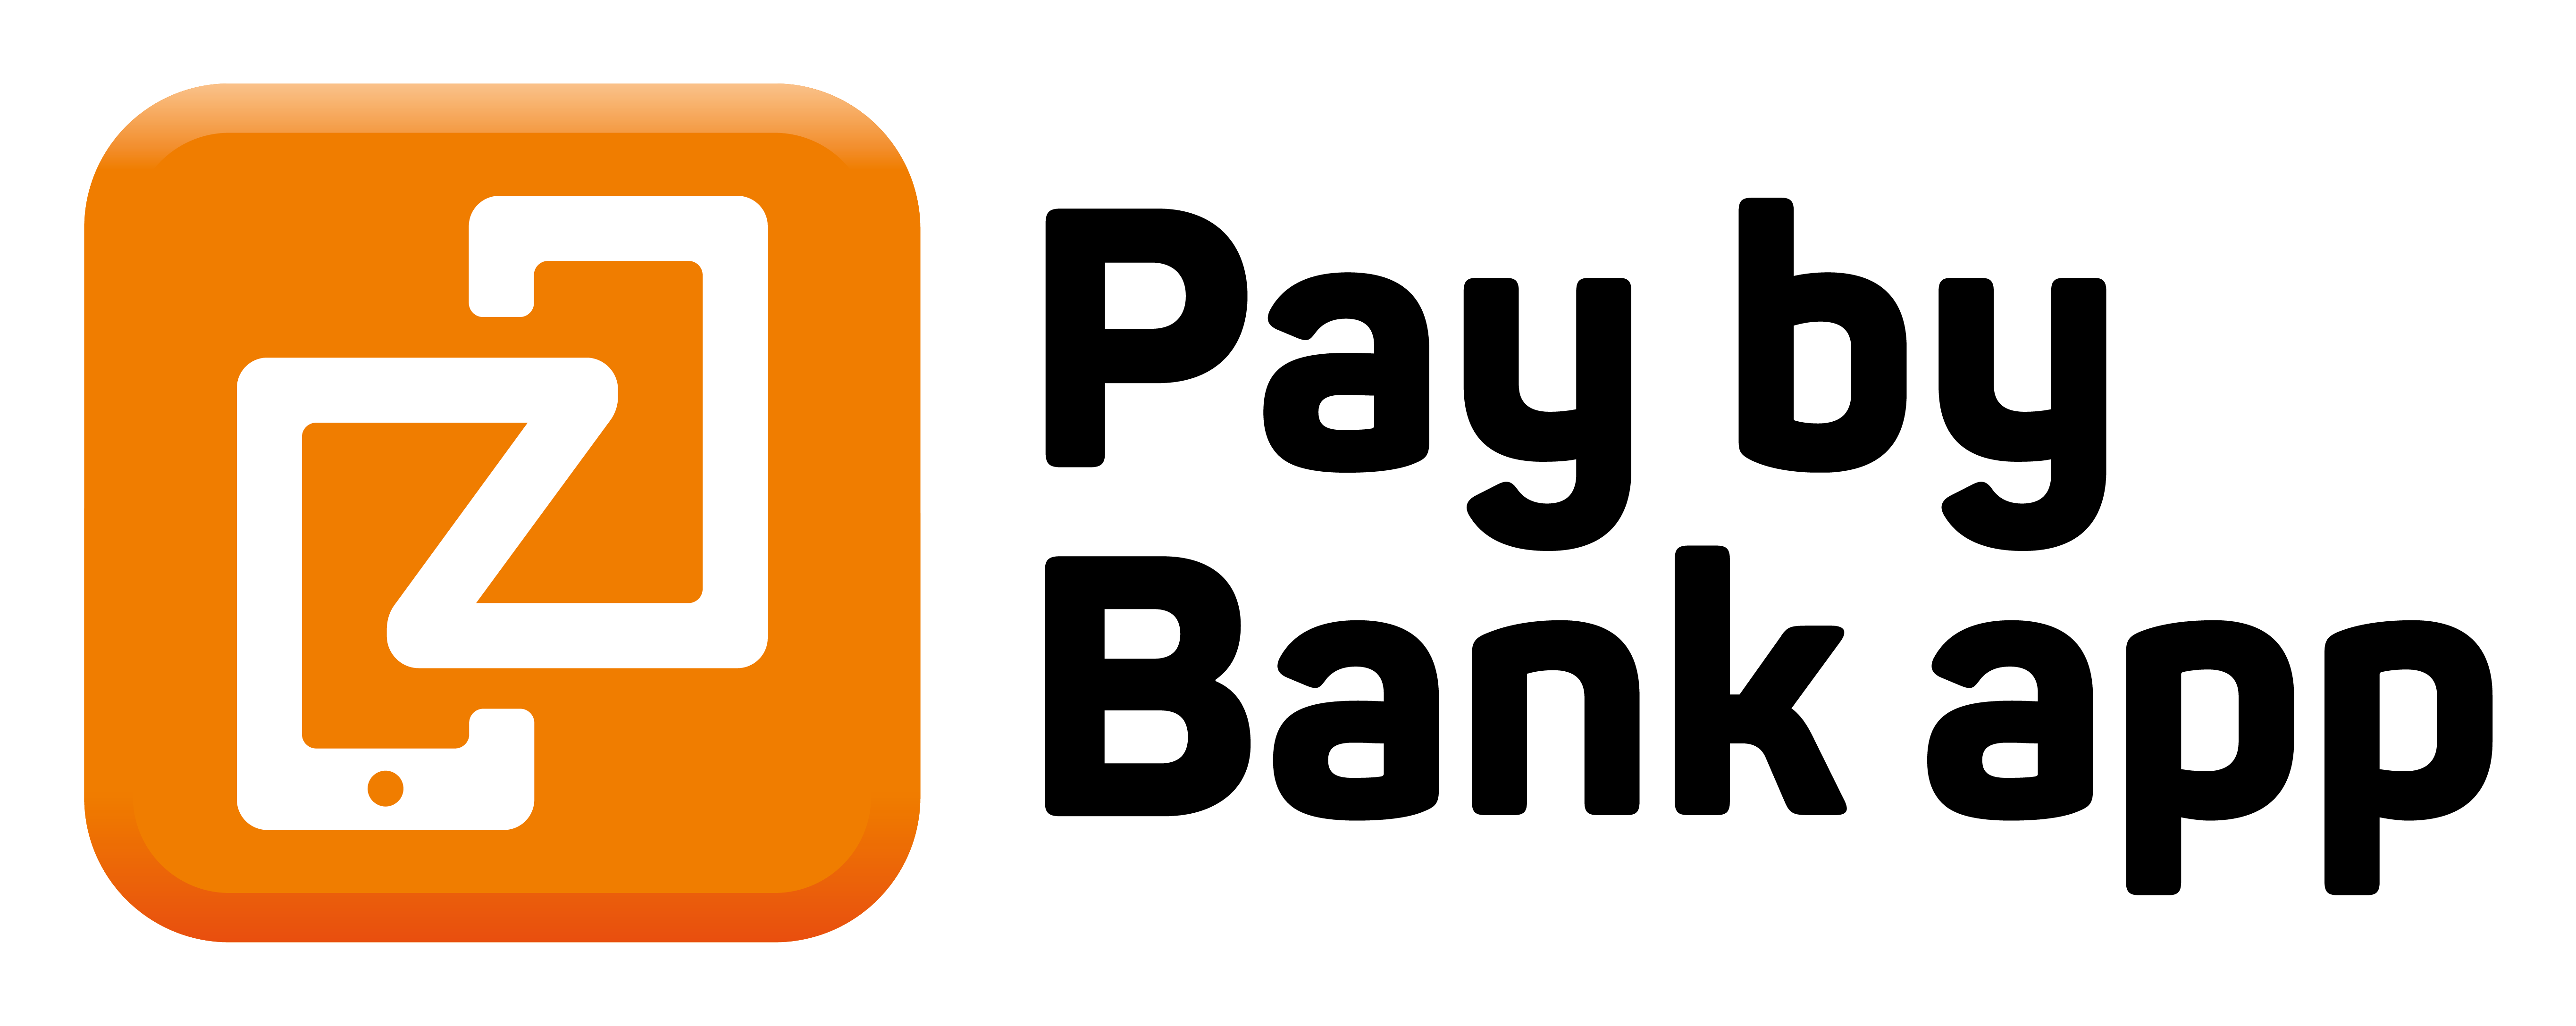 Orange call to action buttons png. Index of wp content